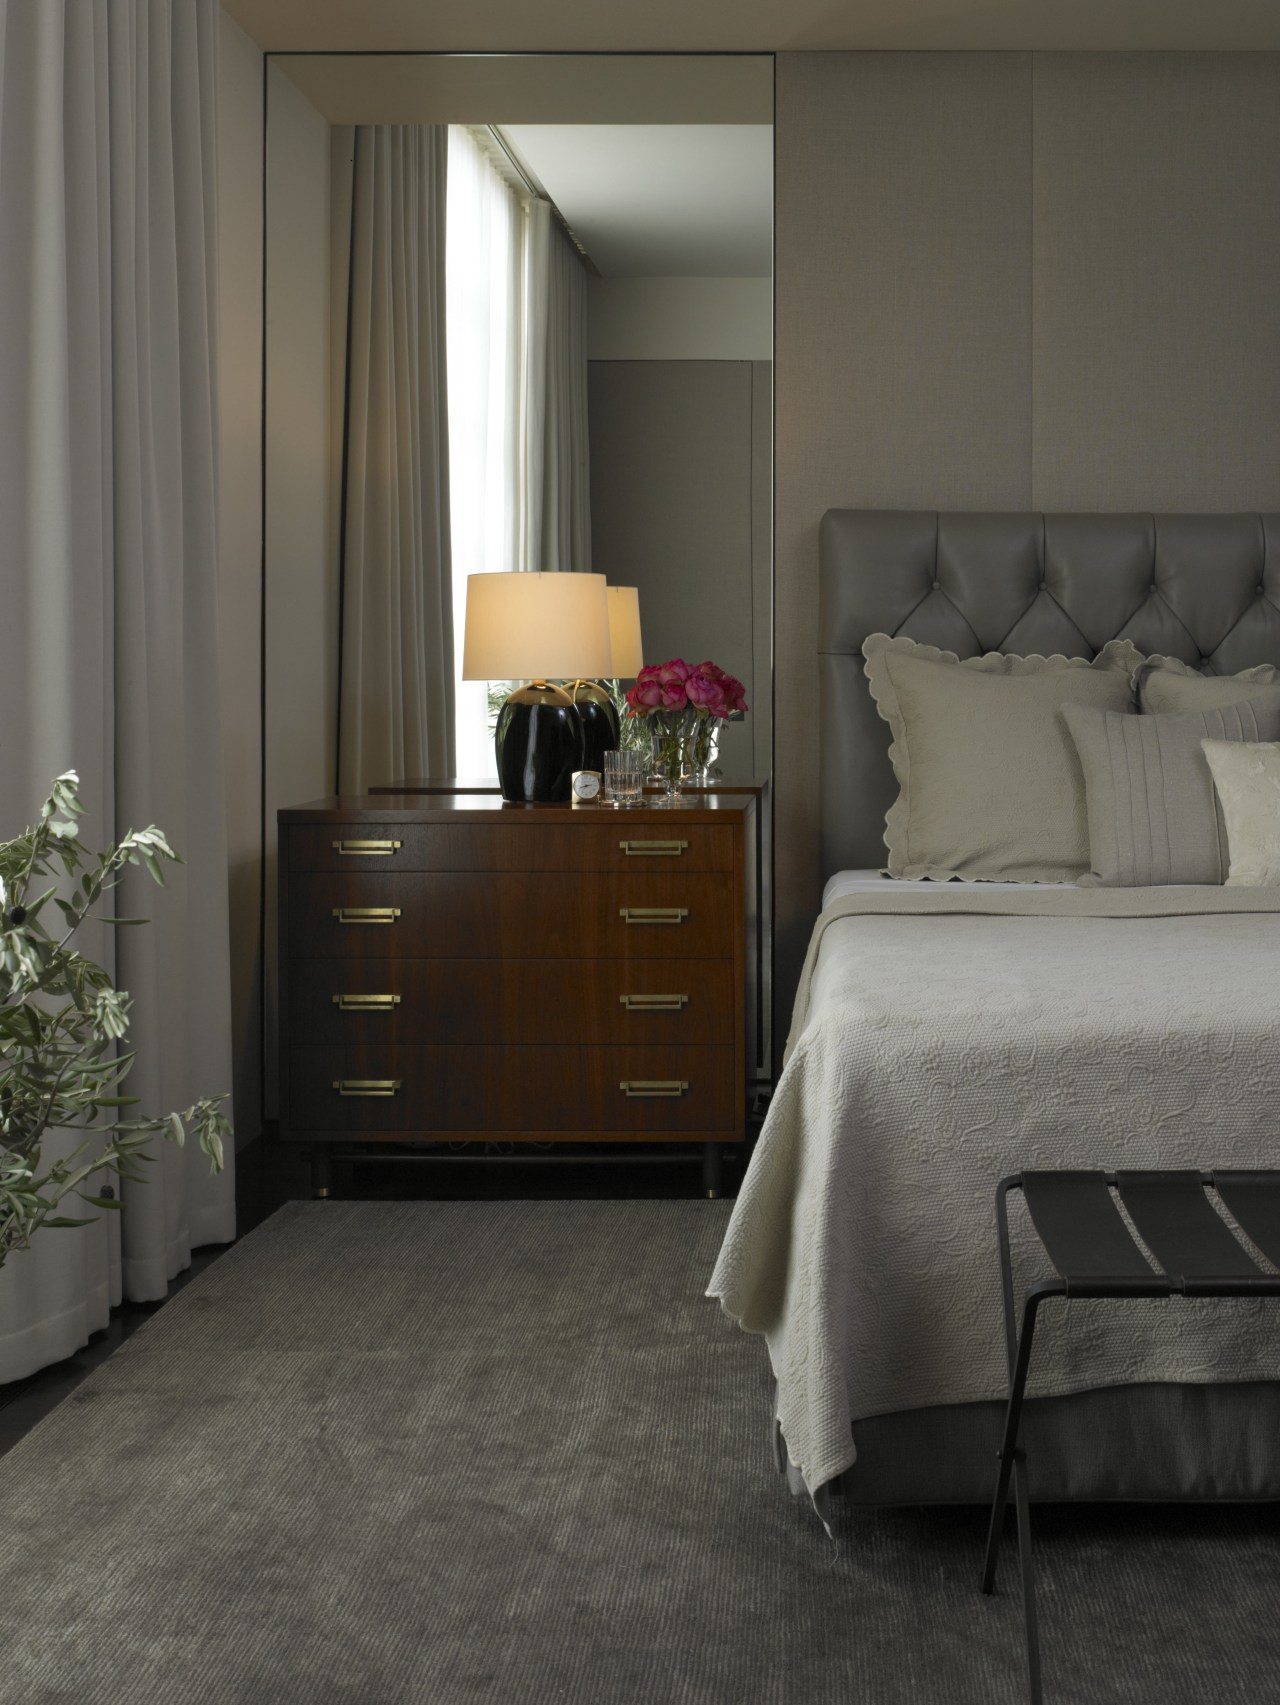 A nicely dressed nightstand completes this remodeled bed, bed frame, bedroom, chest of drawers, drawer, floor, flooring, furniture, hardwood, home, interior design, laminate flooring, nightstand, room, wall, wood, wood flooring, gray, black